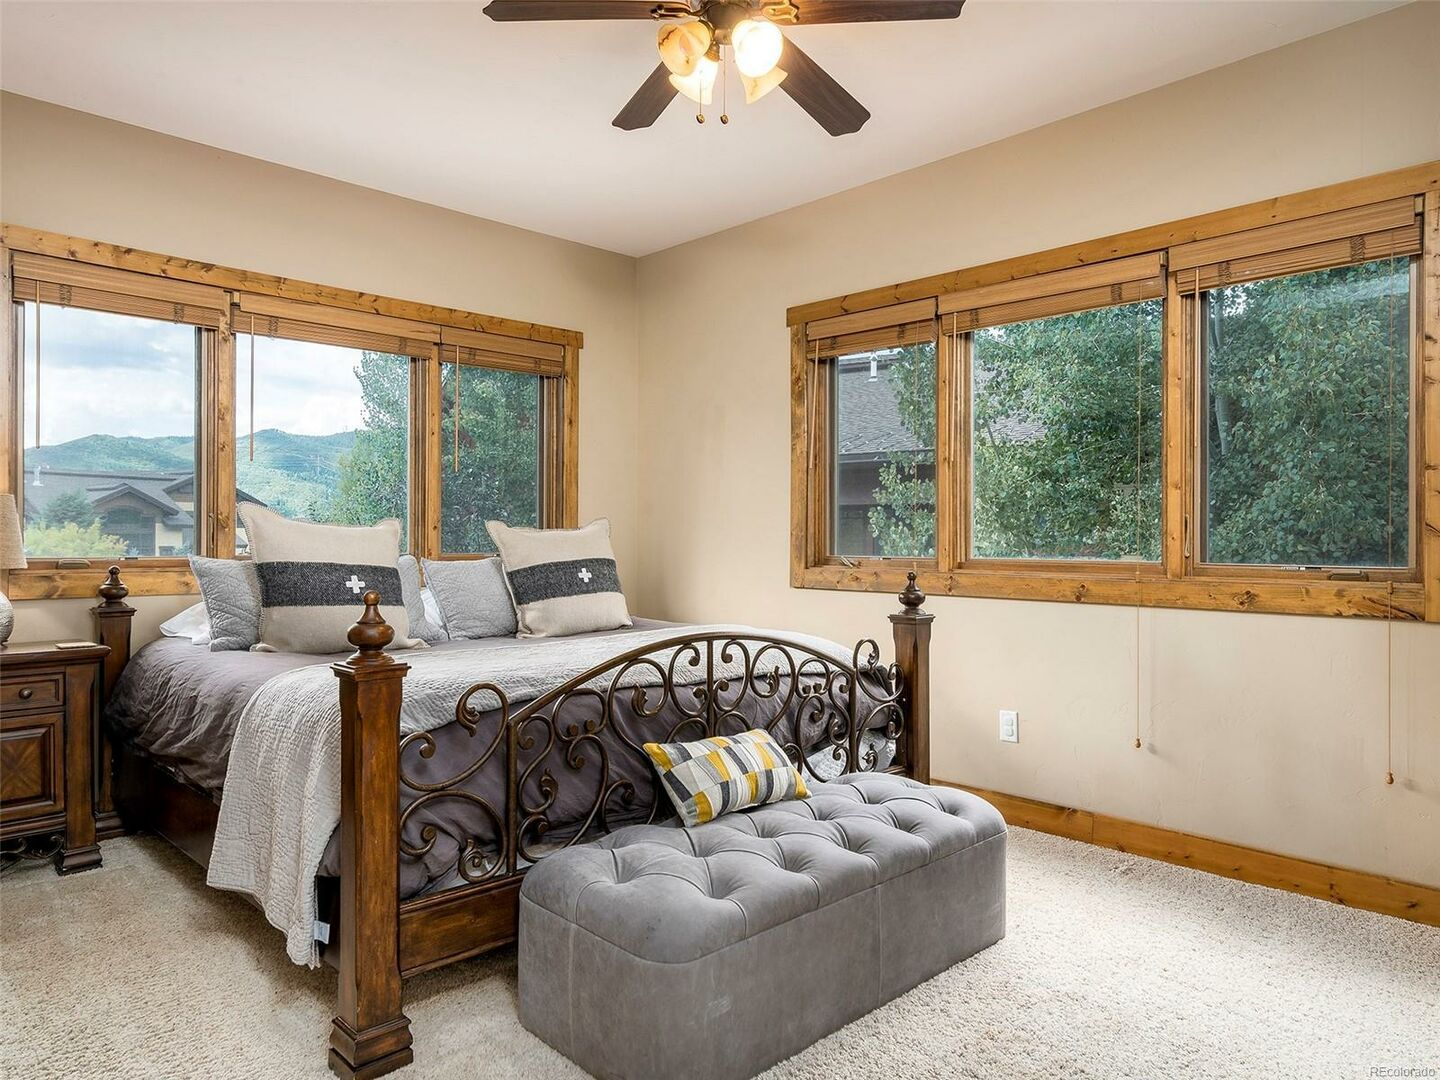 Bedroom with Large Bed, Nightstand, Ceiling Fan, and Windows.